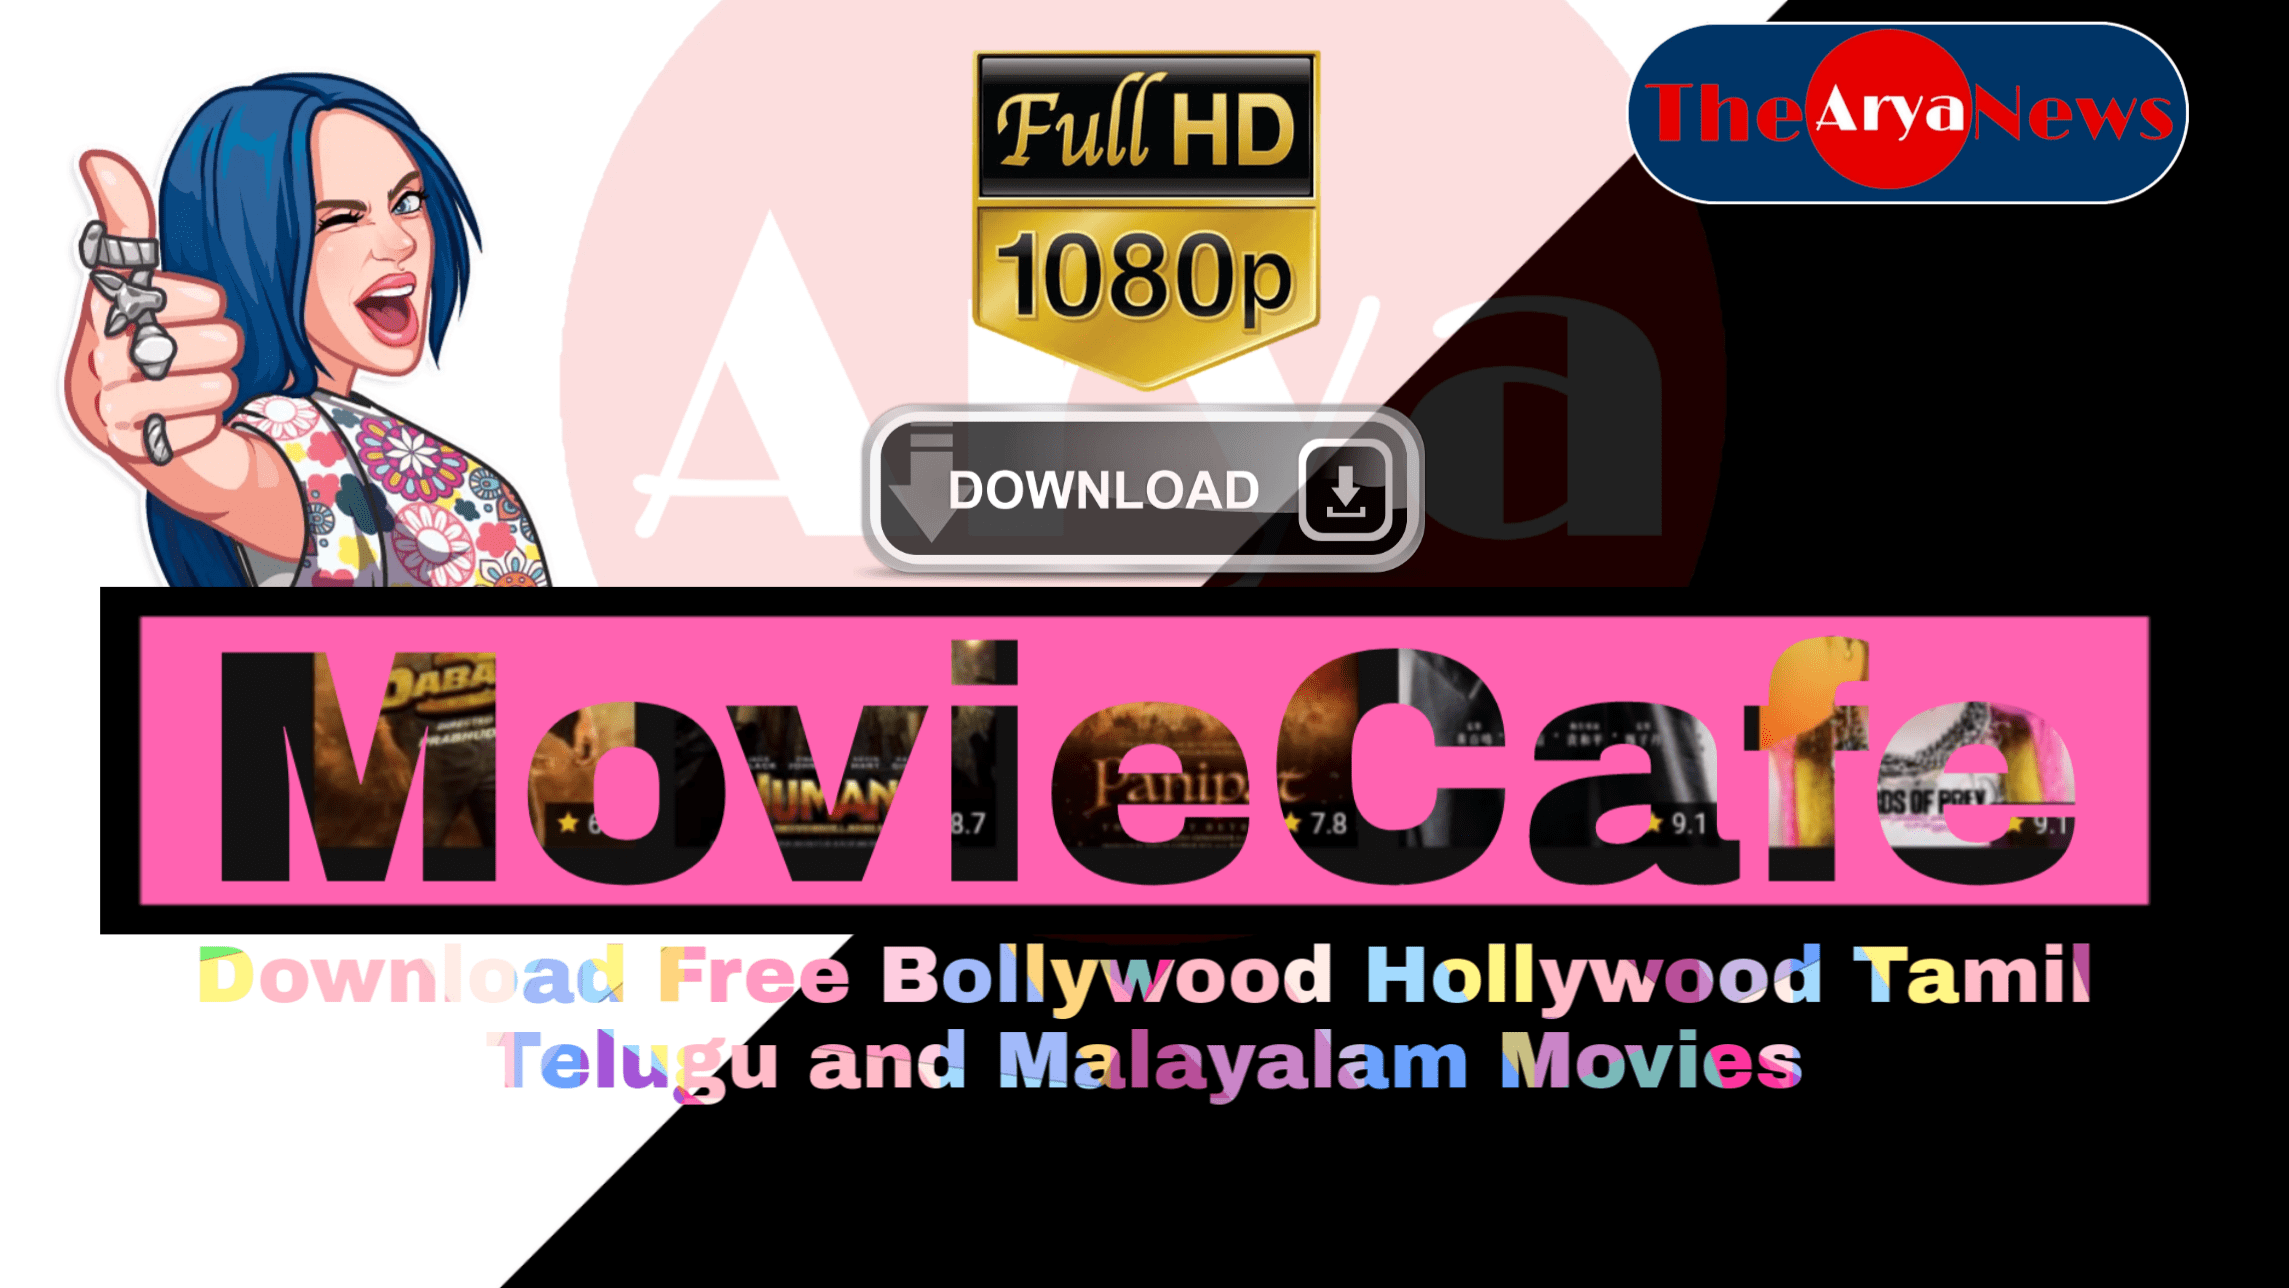 MovieCafe 2020 » Download Free Bollywood, Dubbed Movies Hollywood